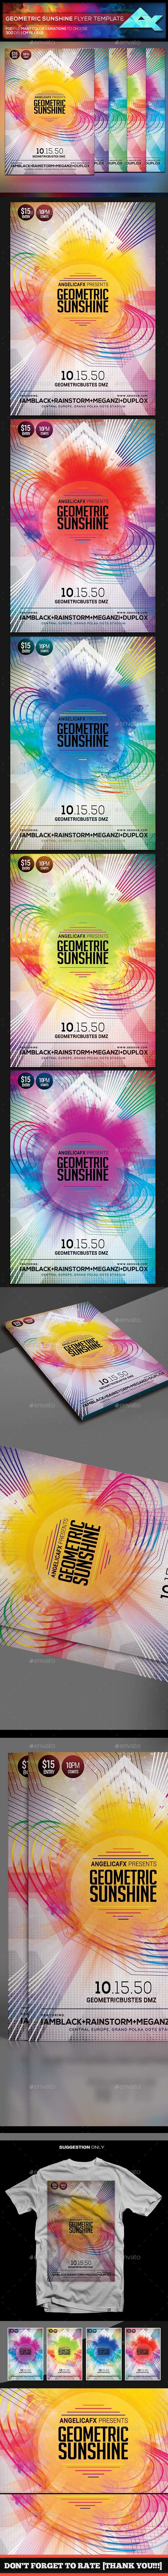 Geometric Sunshine Flyer/Poster Template - Events Flyers